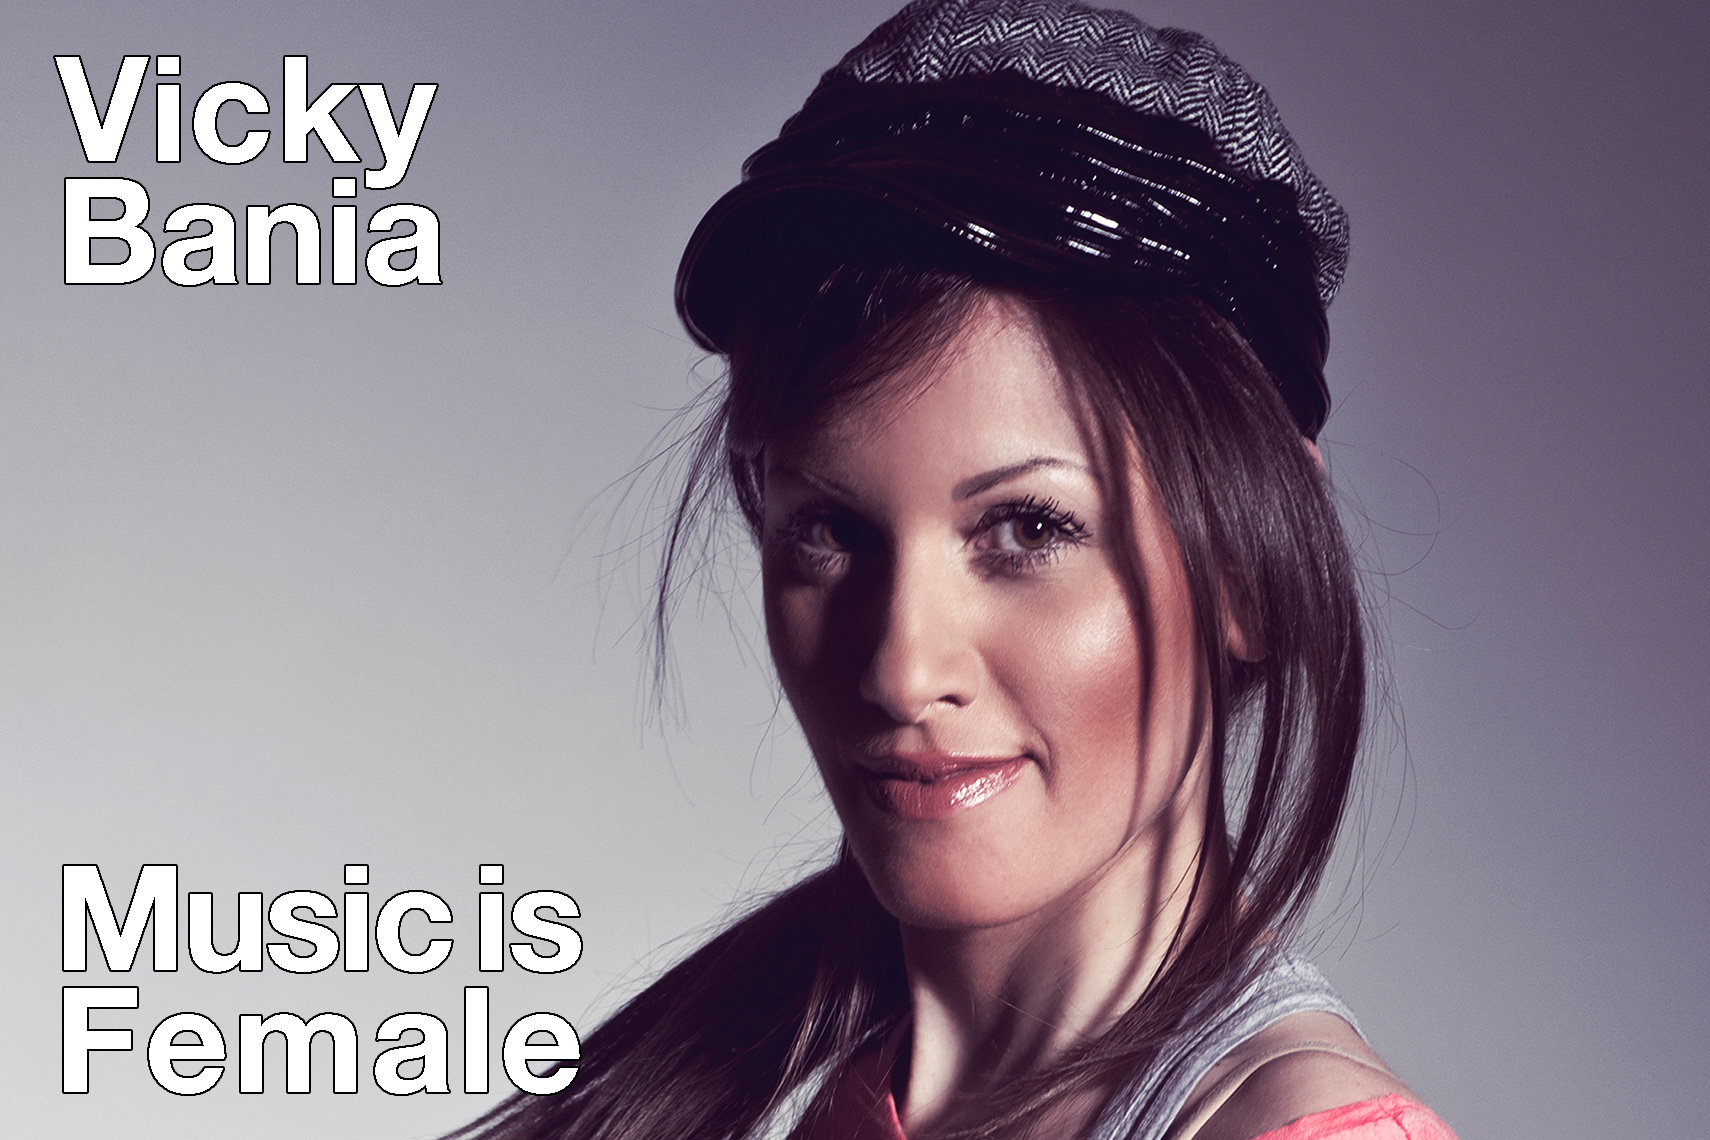 LIVINGCARNIVAL MUSIC IS FEMALE VICKY BANIA